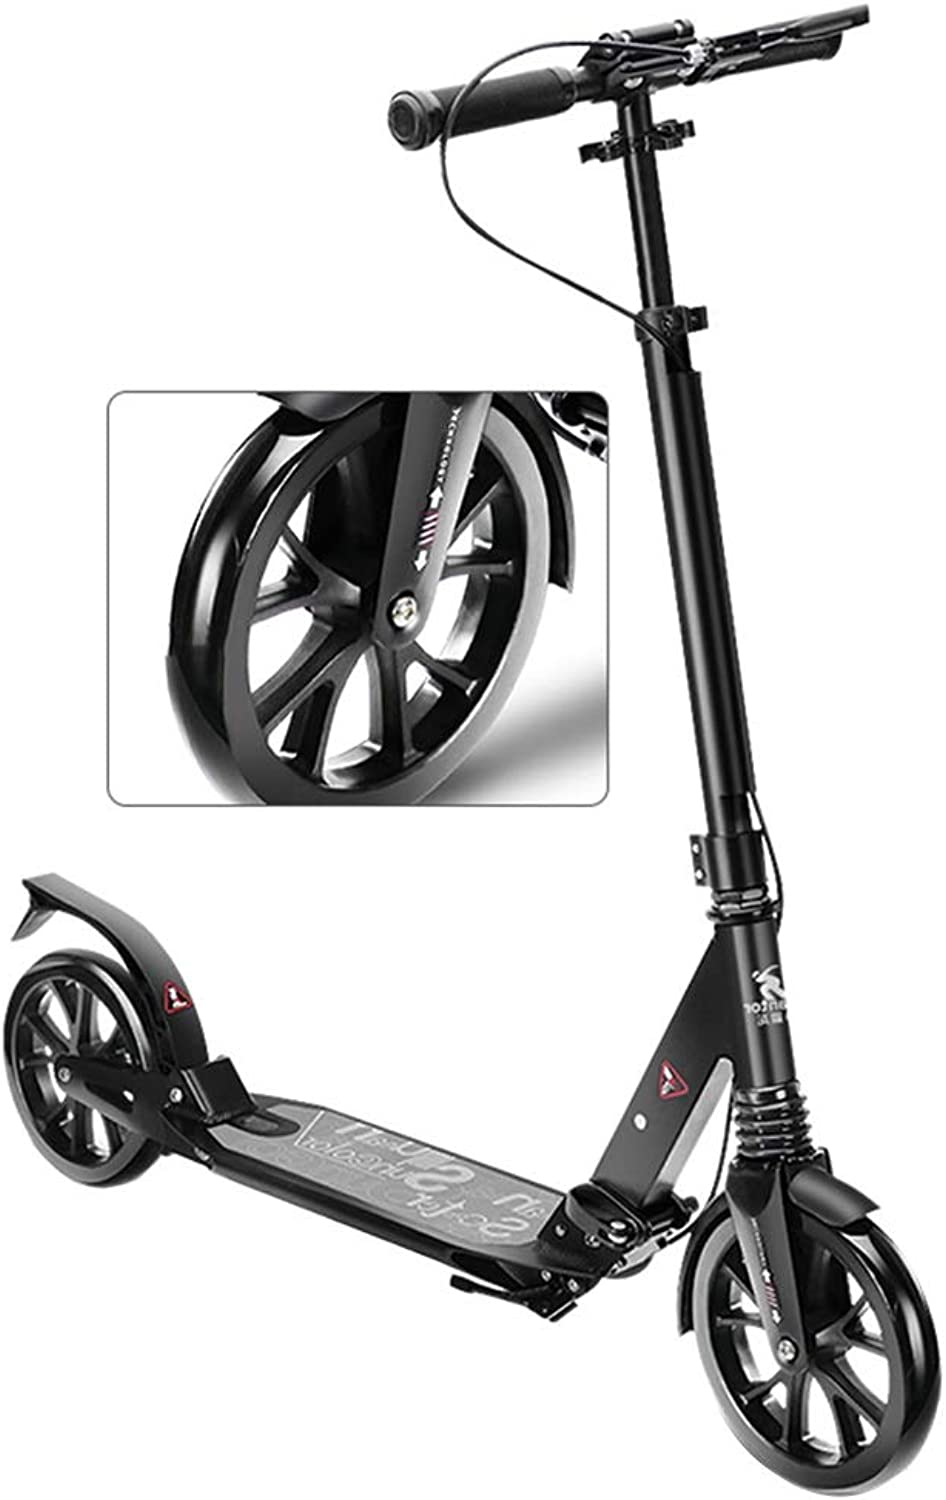 LXLA  Adjustable Foldable Adult Kick Scooter with Hand Brake, Front & Rear Suspension, 40mm ExtraWide Big Wheels, Supports 220lbs, NonElectric